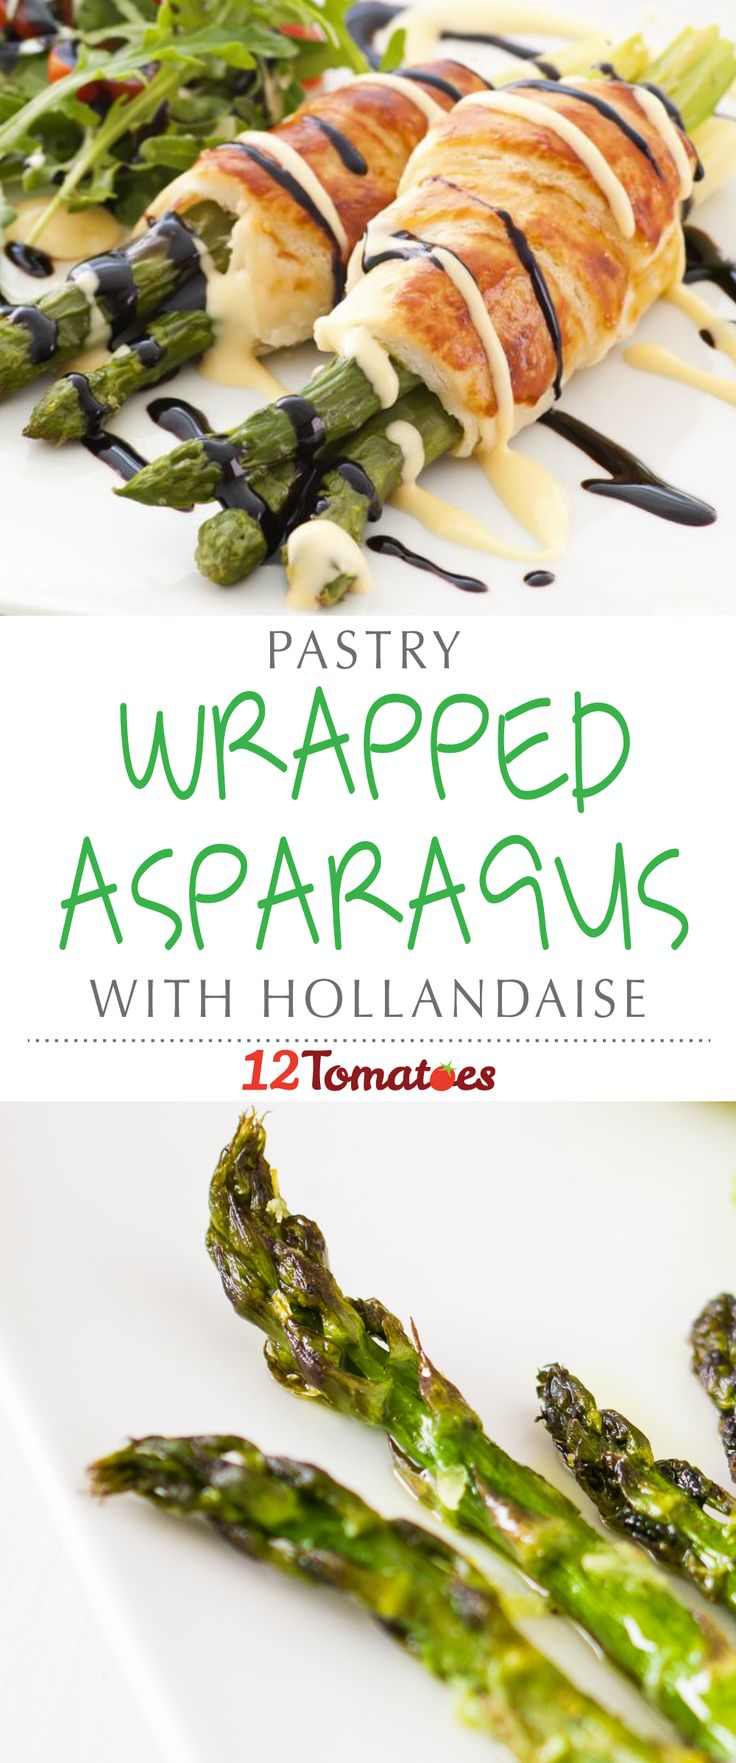 Pastry Wrapped Asparagus With Hollandaise | This recipe is absolutely exquisite and a totally appropriate side for any sophisticated meal: brunch, lunch or dinner.